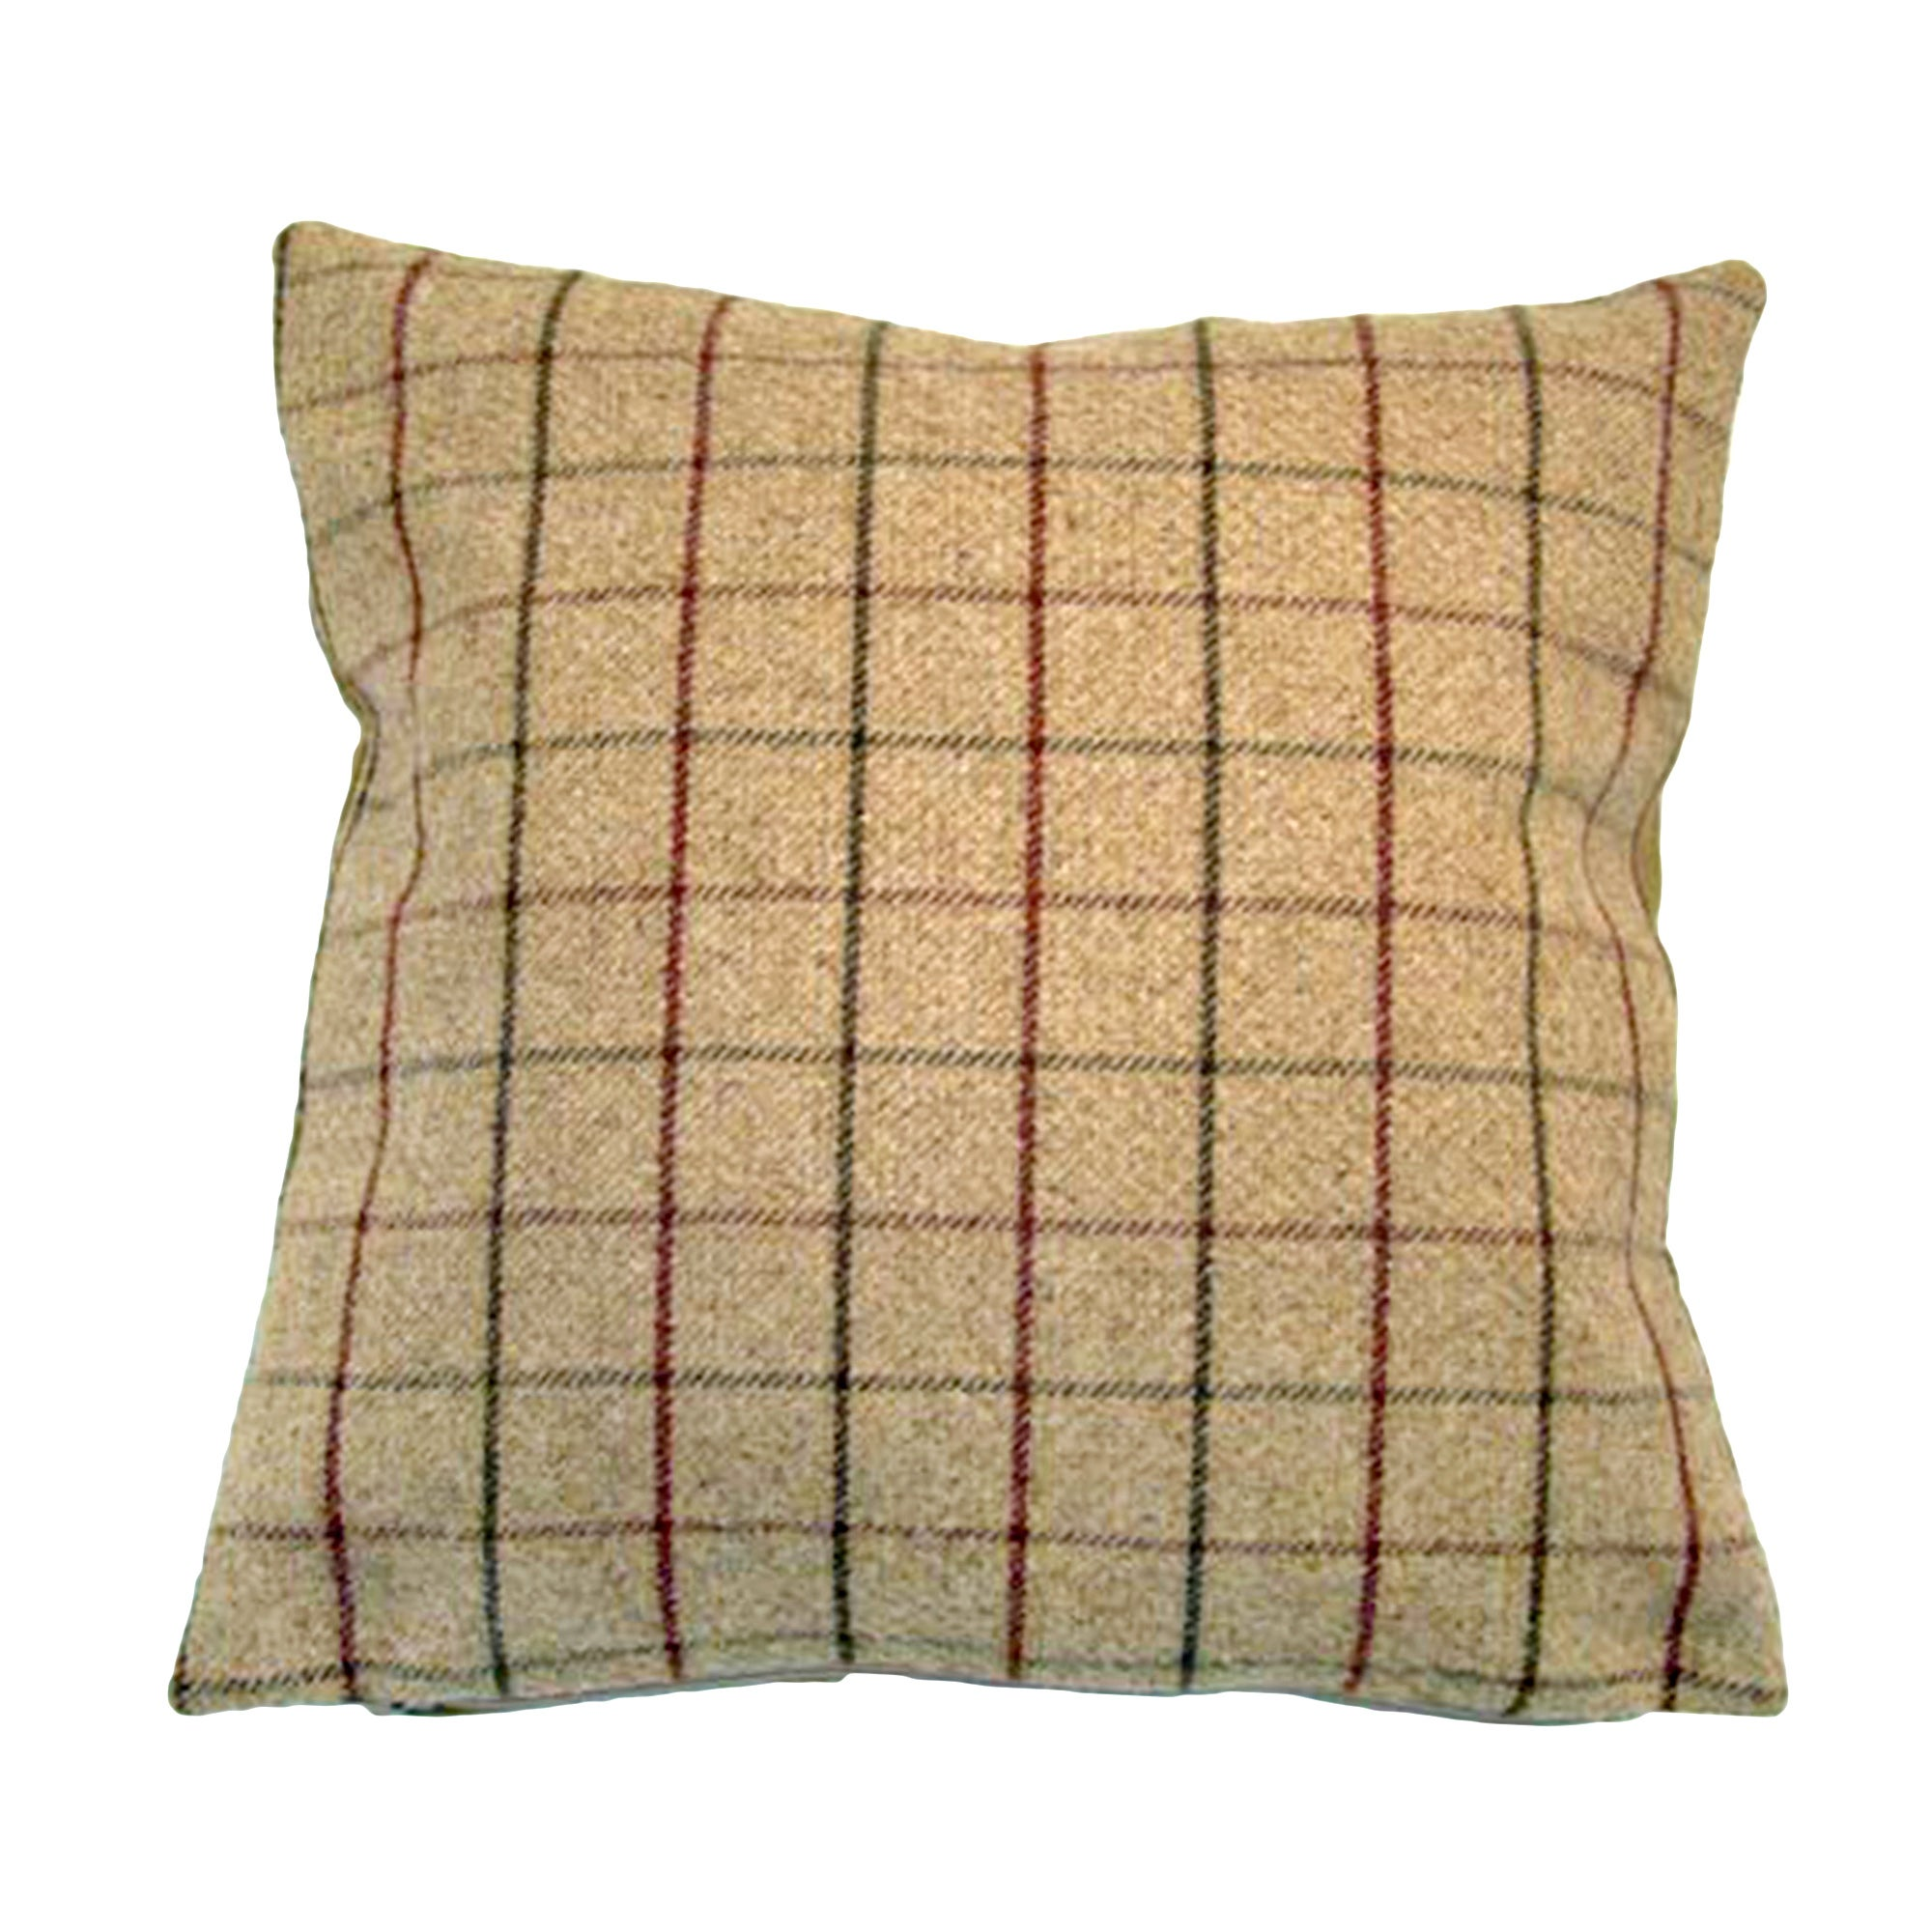 Photo of Banburgh cushion cover mulberry -red-